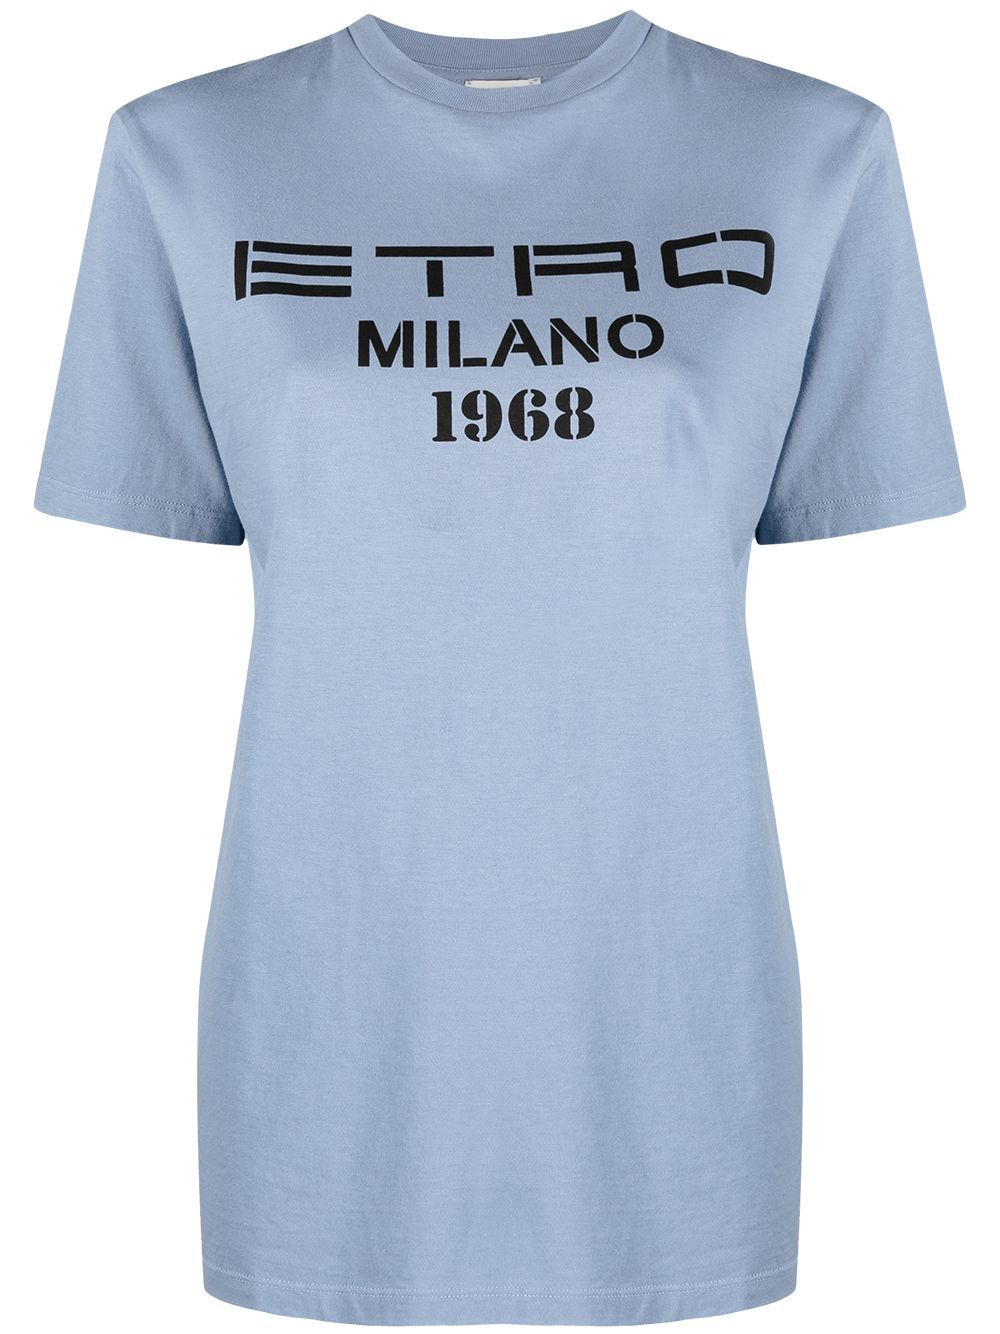 Etro ETRO WOMEN'S LIGHT BLUE COTTON T-SHIRT